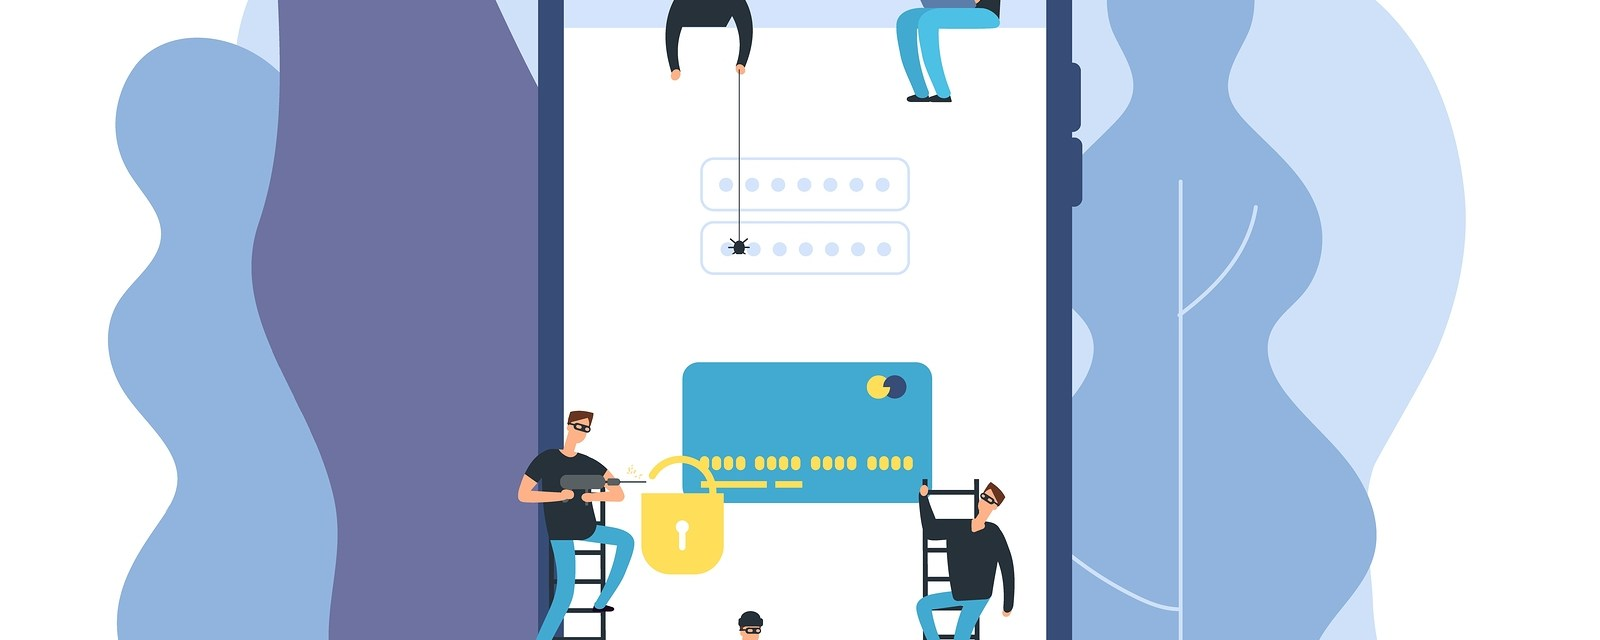 Mobile Banking Users are Targeted By SMS-based Phishing Attacks